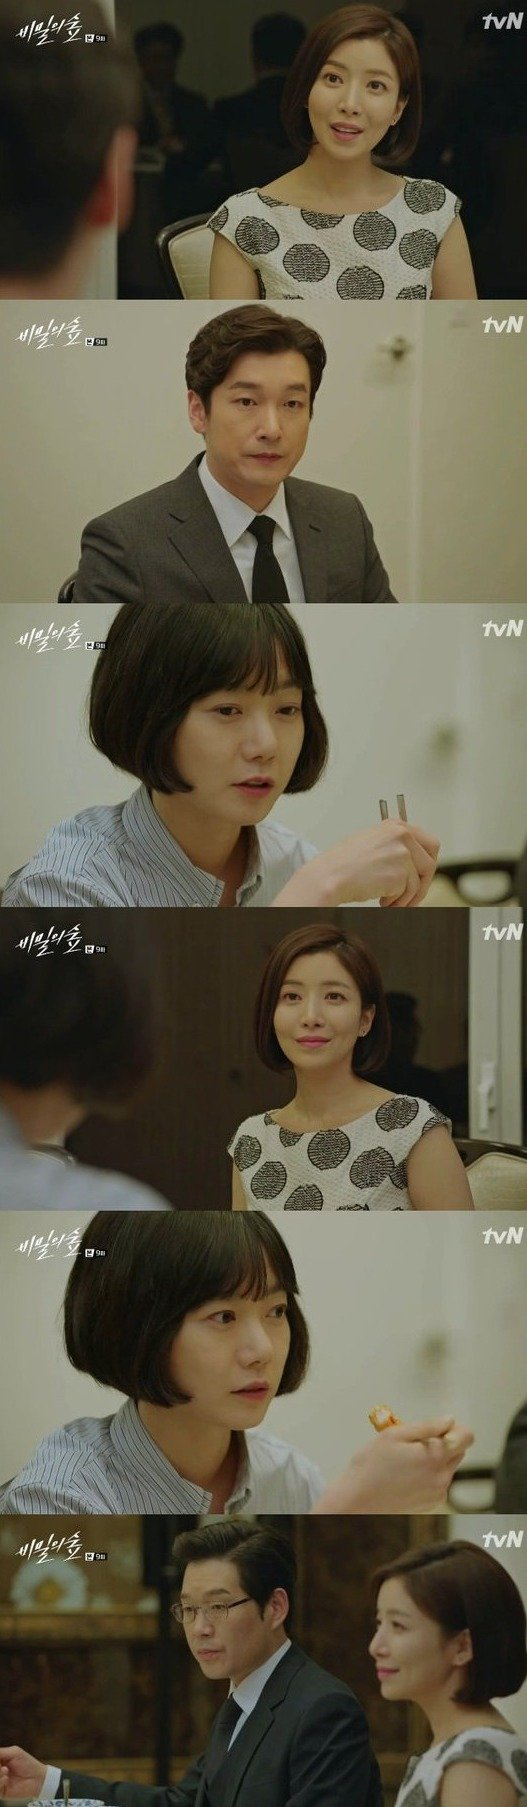 [Spoiler] Added episodes 9 and 10 captures for the Korean drama 'Secret Forest'